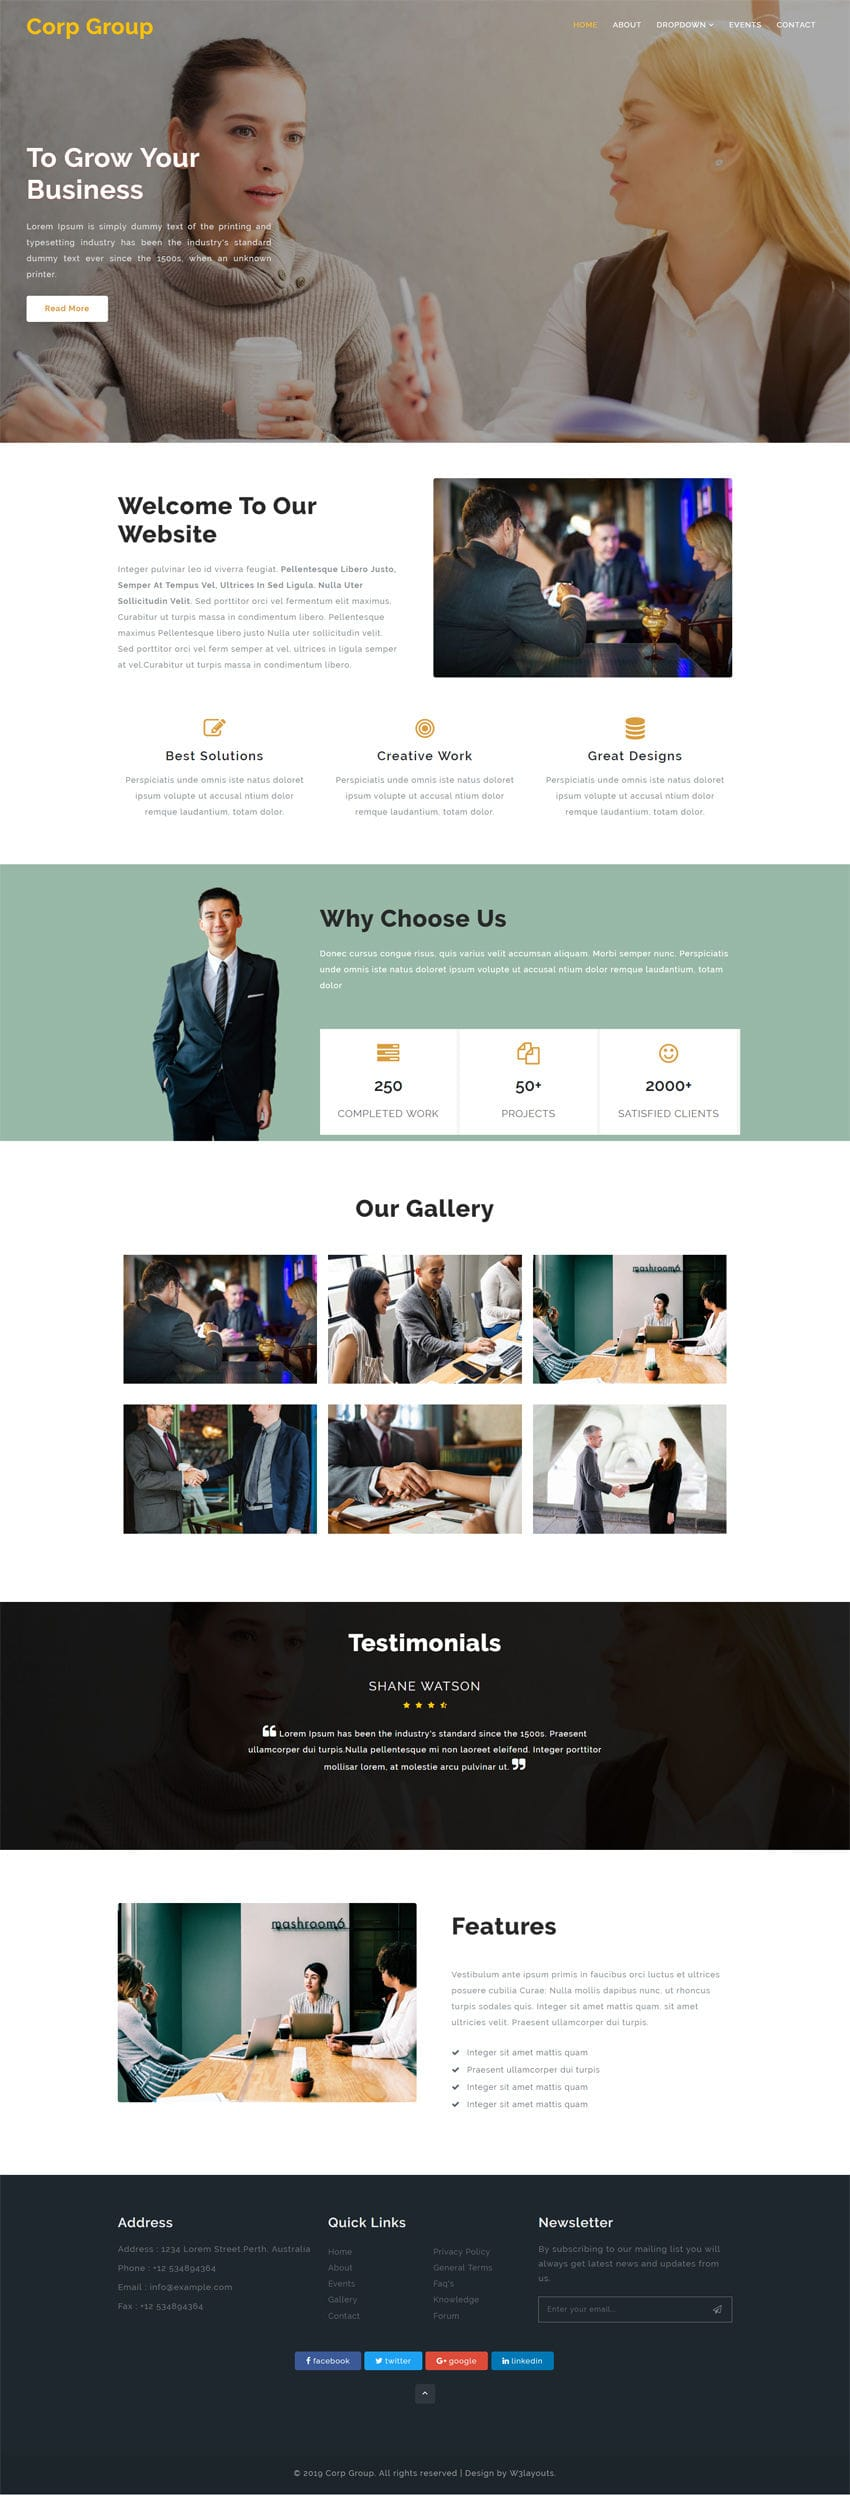 Corp Group is a free website template for corporates, agencies and similar businesses. This HTML web template will give your agency a stunning web presence.